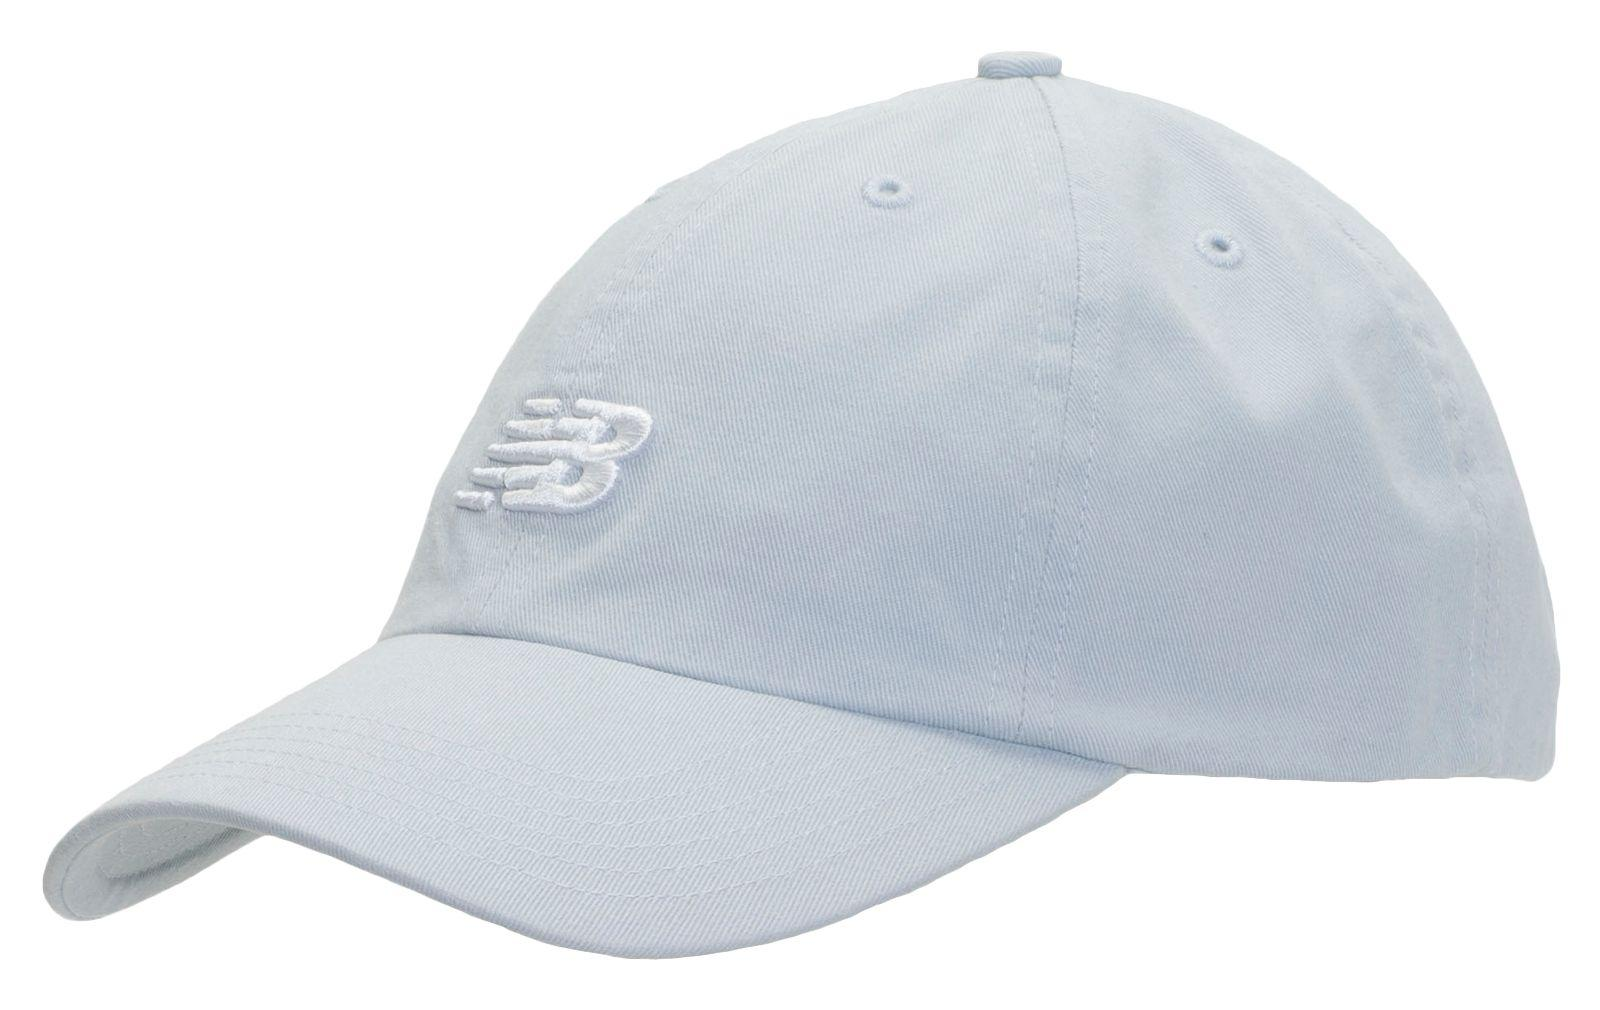 76379c873f2 Lyst - New Balance Classic Curved Brim Nb Hat in White for Men